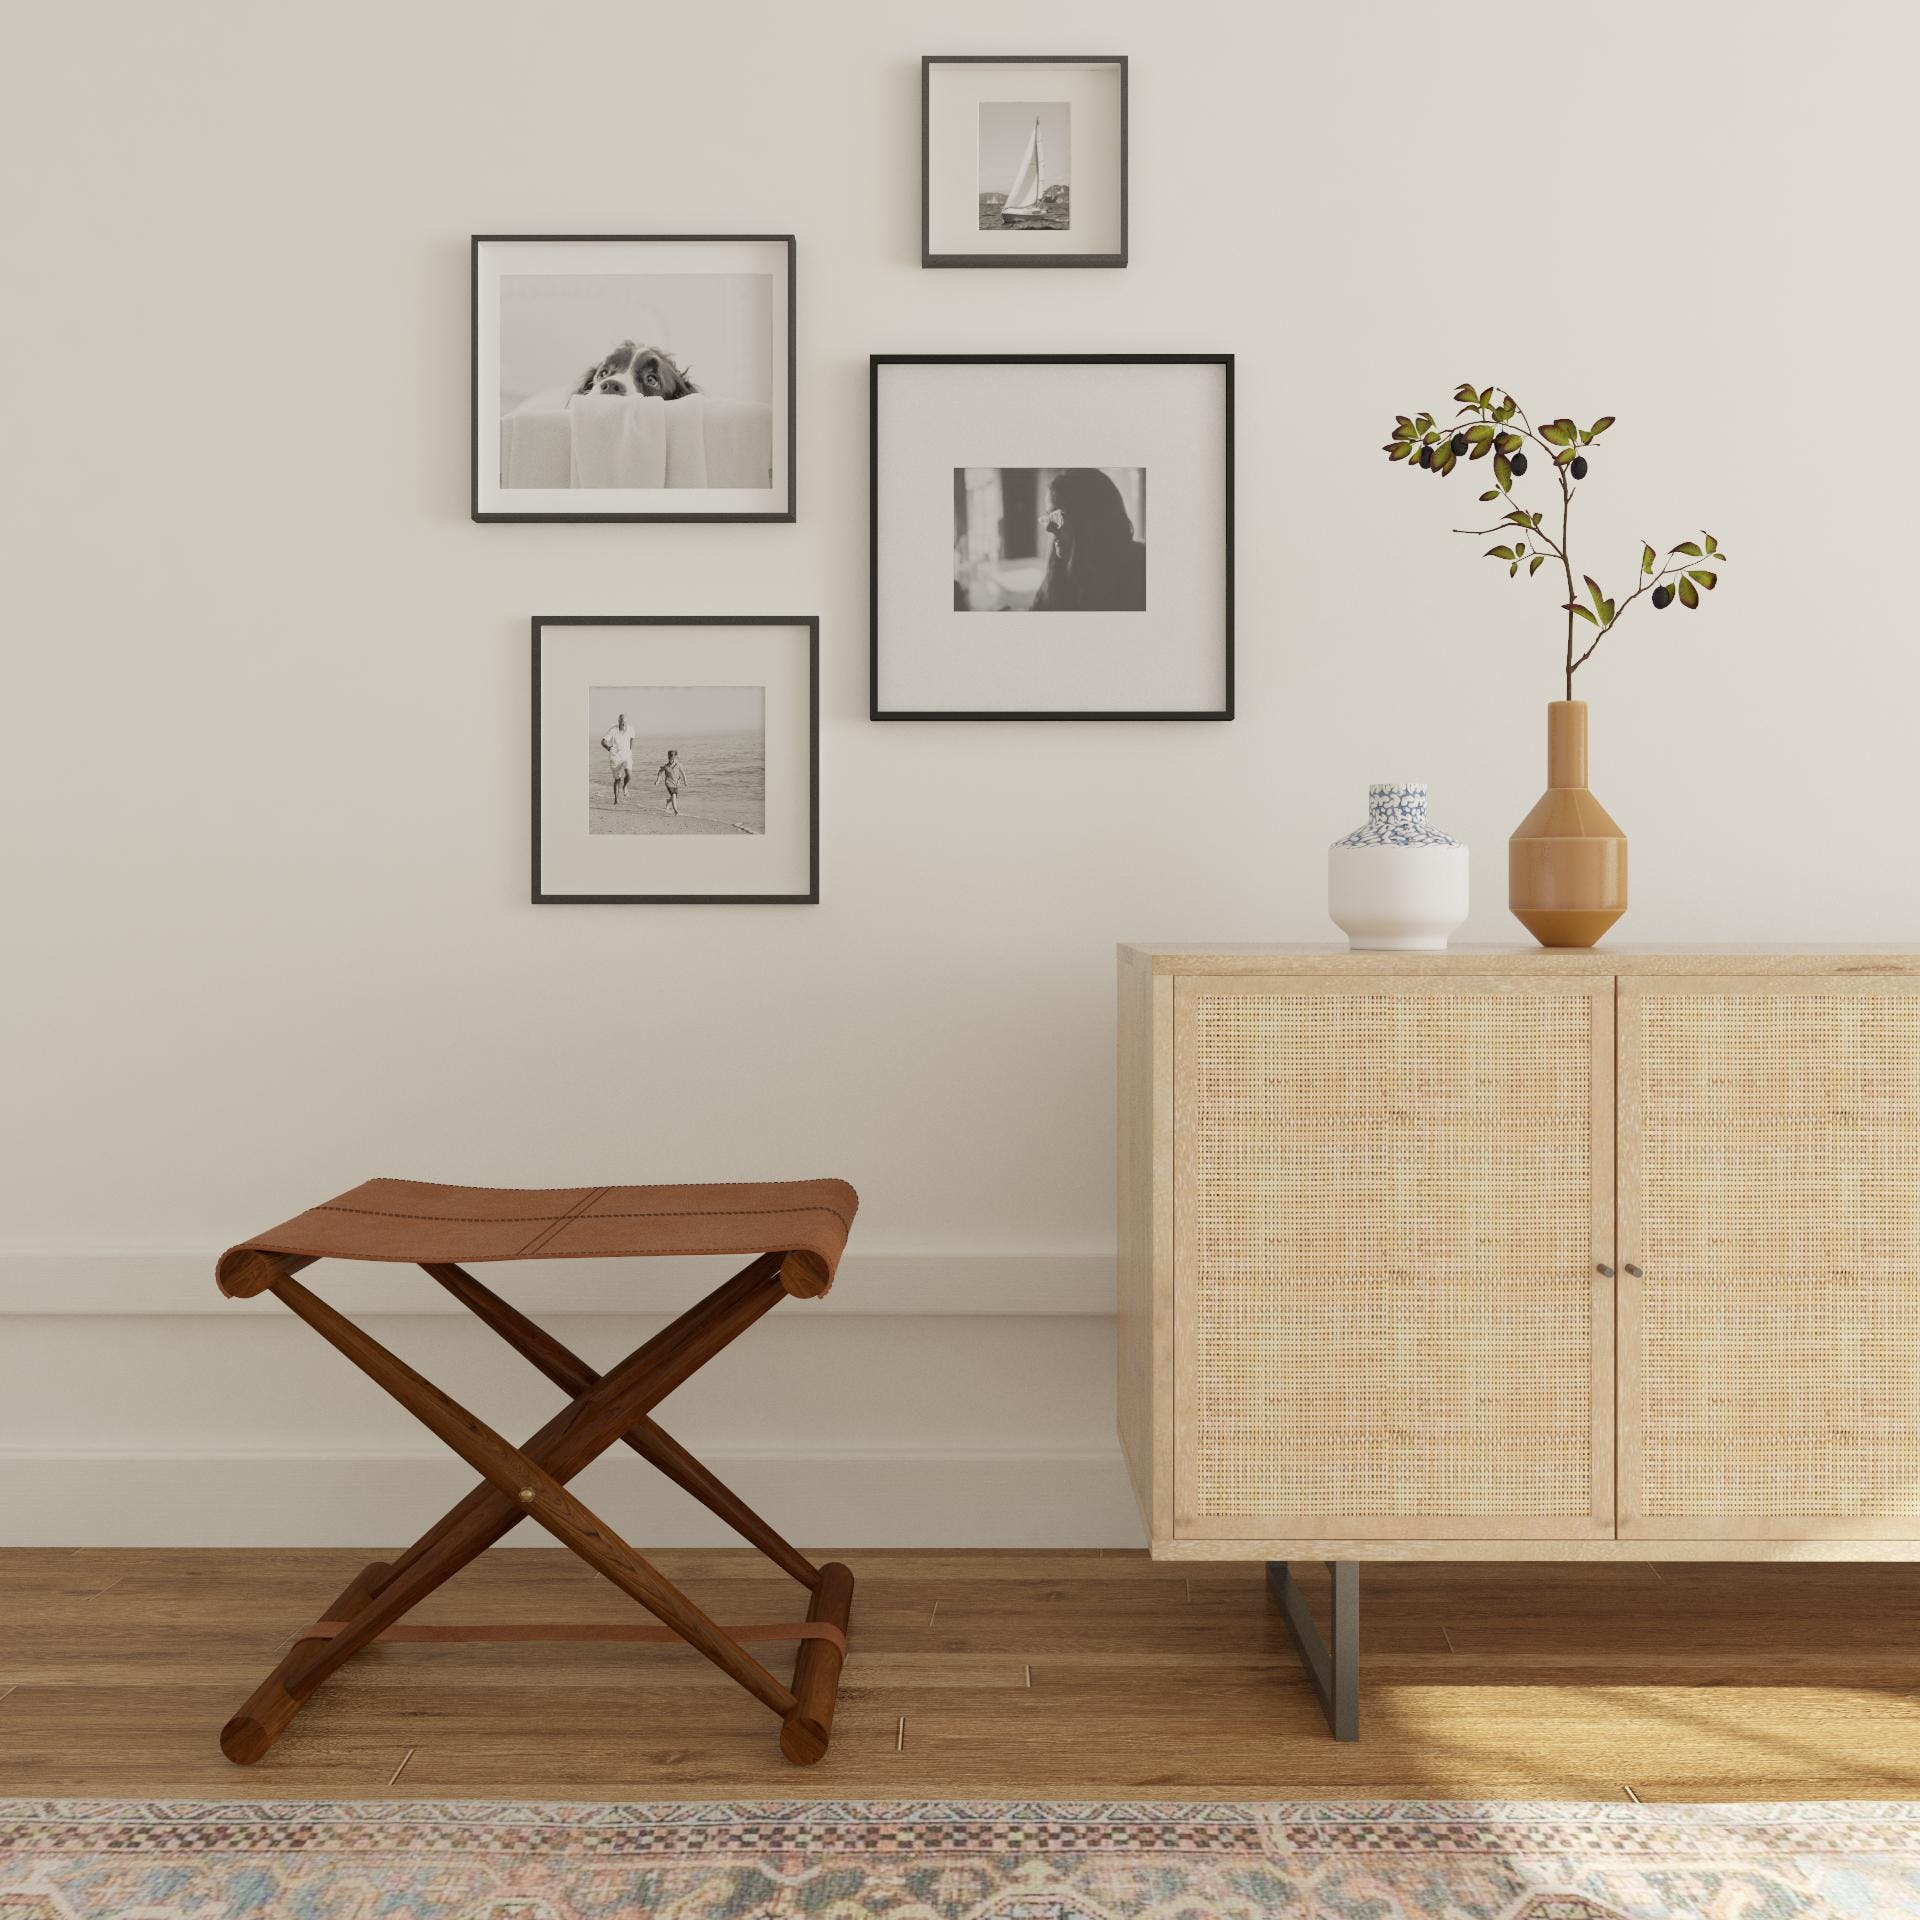 Setting the Tone with Wall Art